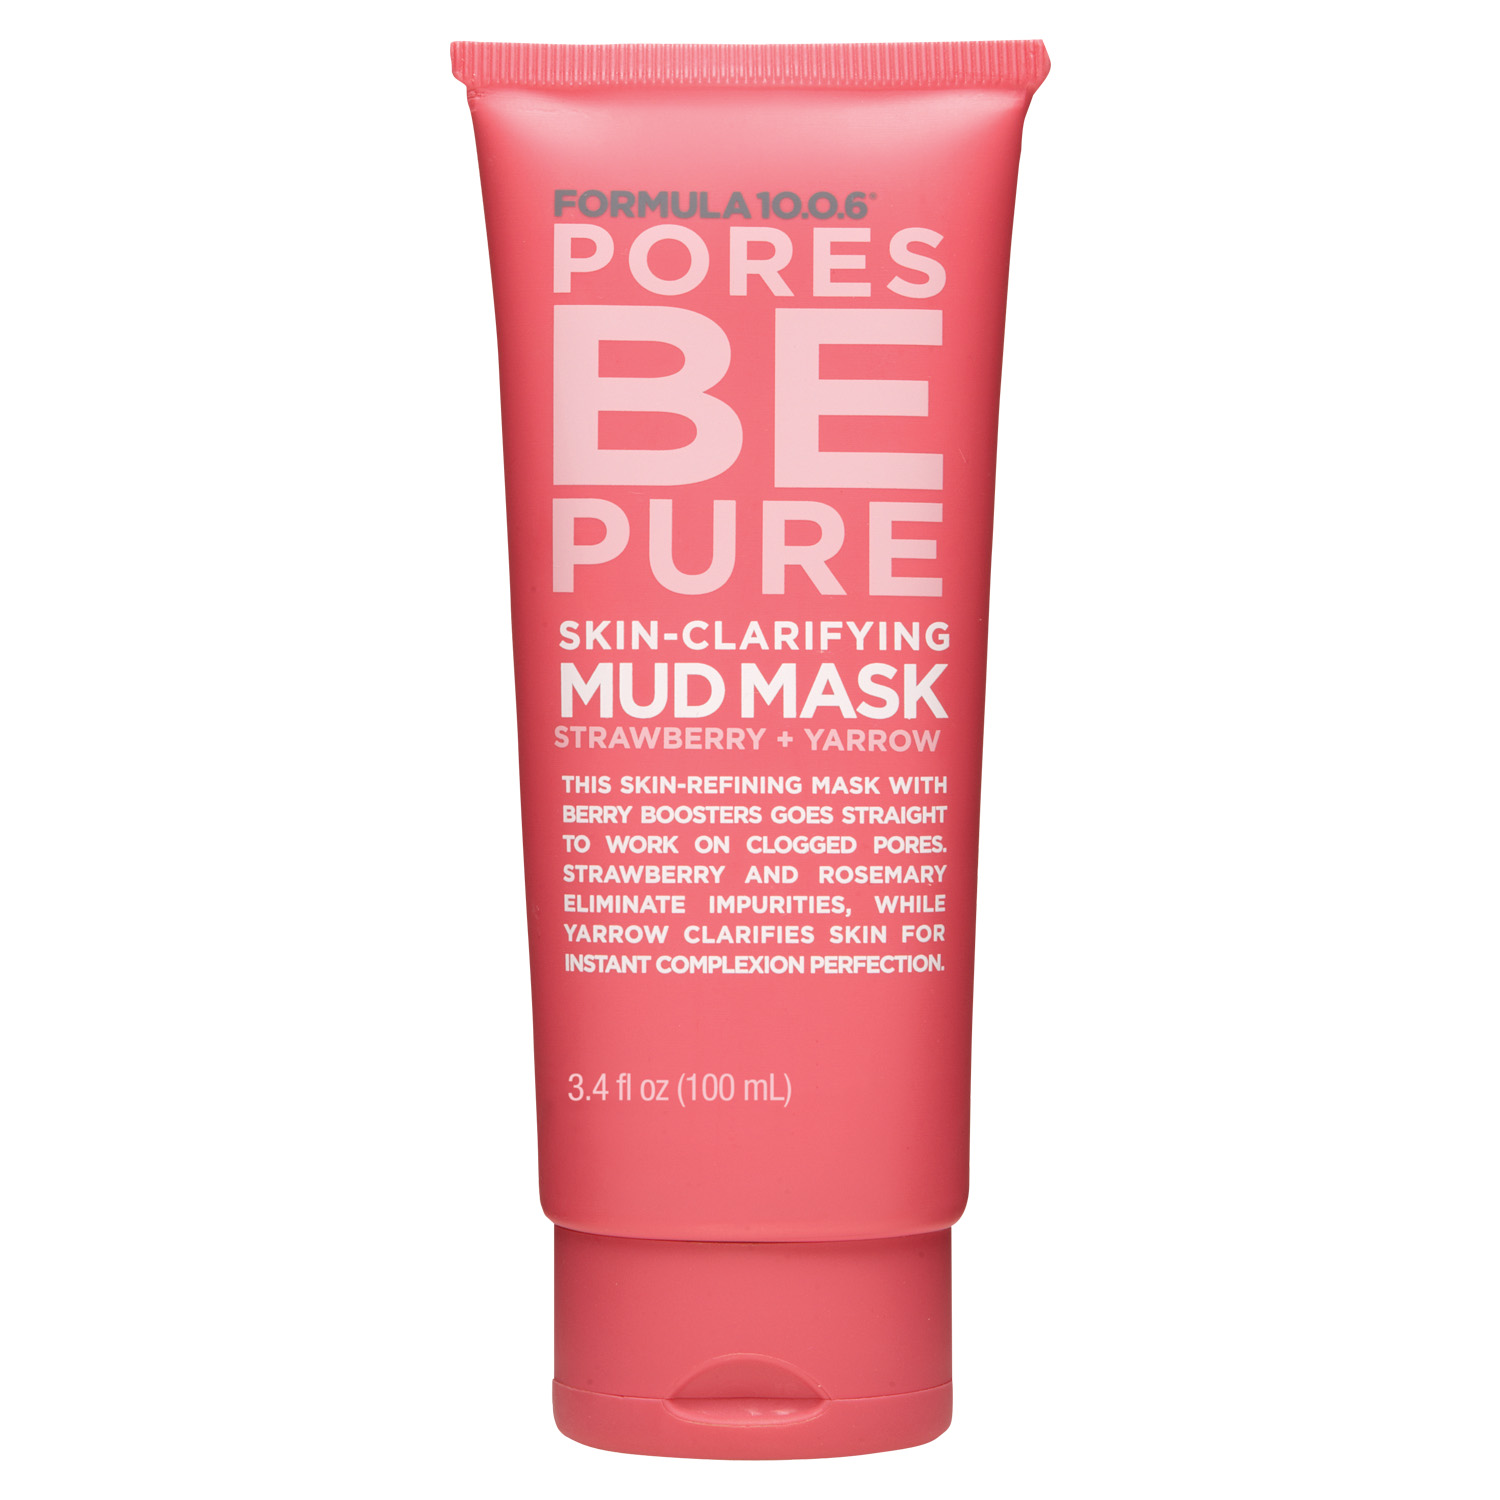 Formula 10.0.6 Pores Be Pure Skin-Clarifying Mud Mask by Aspire Brands